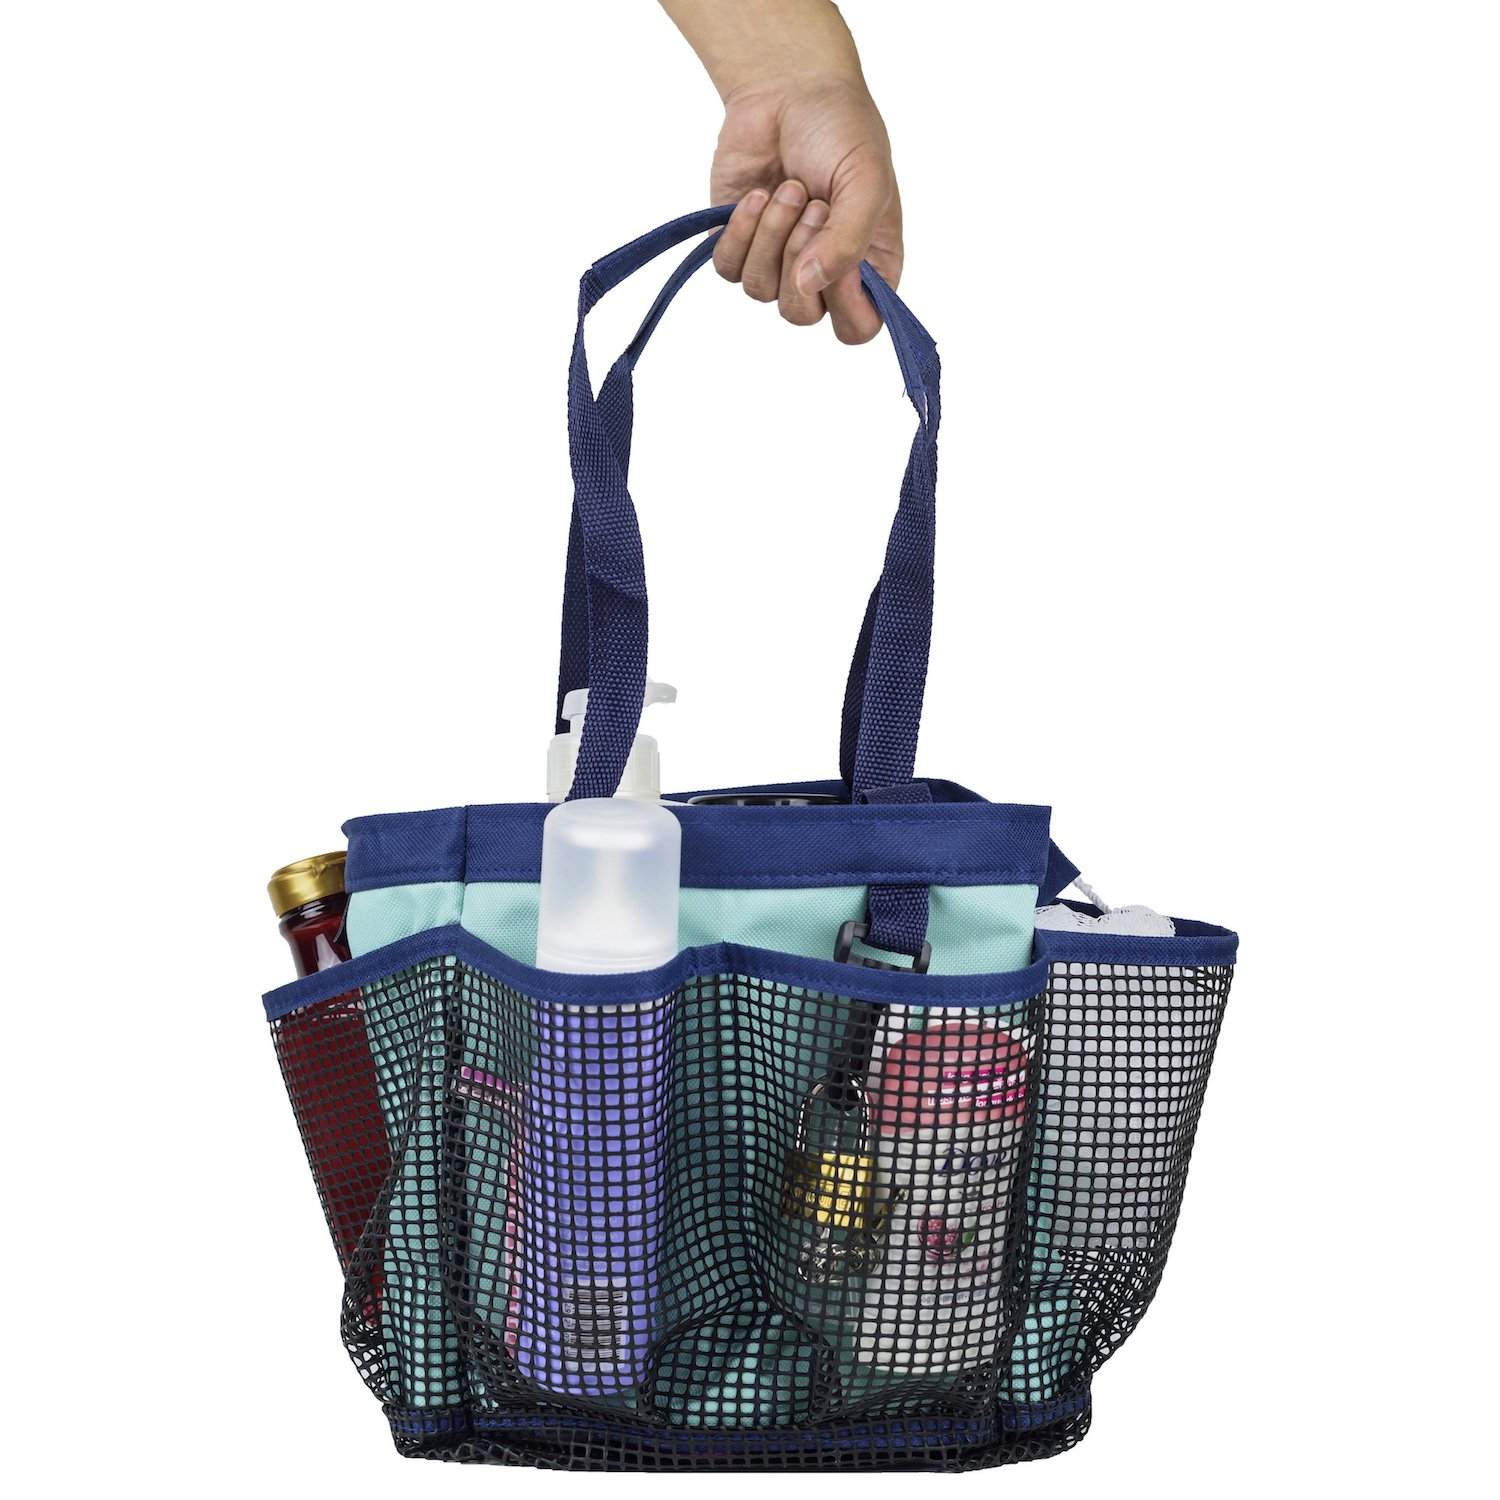 Portable Mesh Shower Caddy Tote for College Dorm